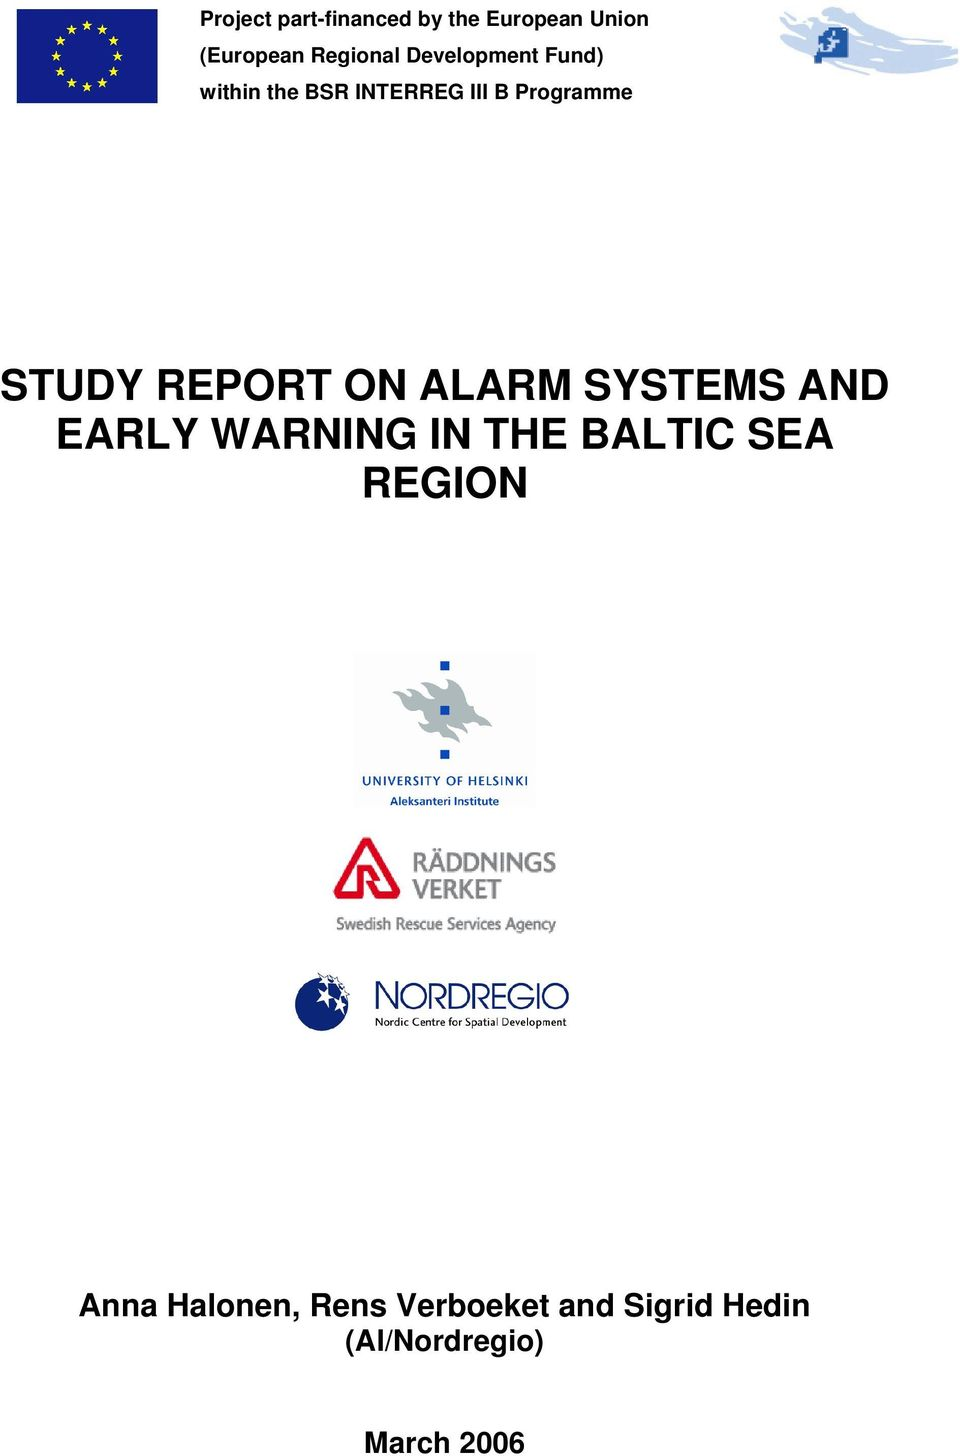 REPORT ON ALARM SYSTEMS AND EARLY WARNING IN THE BALTIC SEA REGION